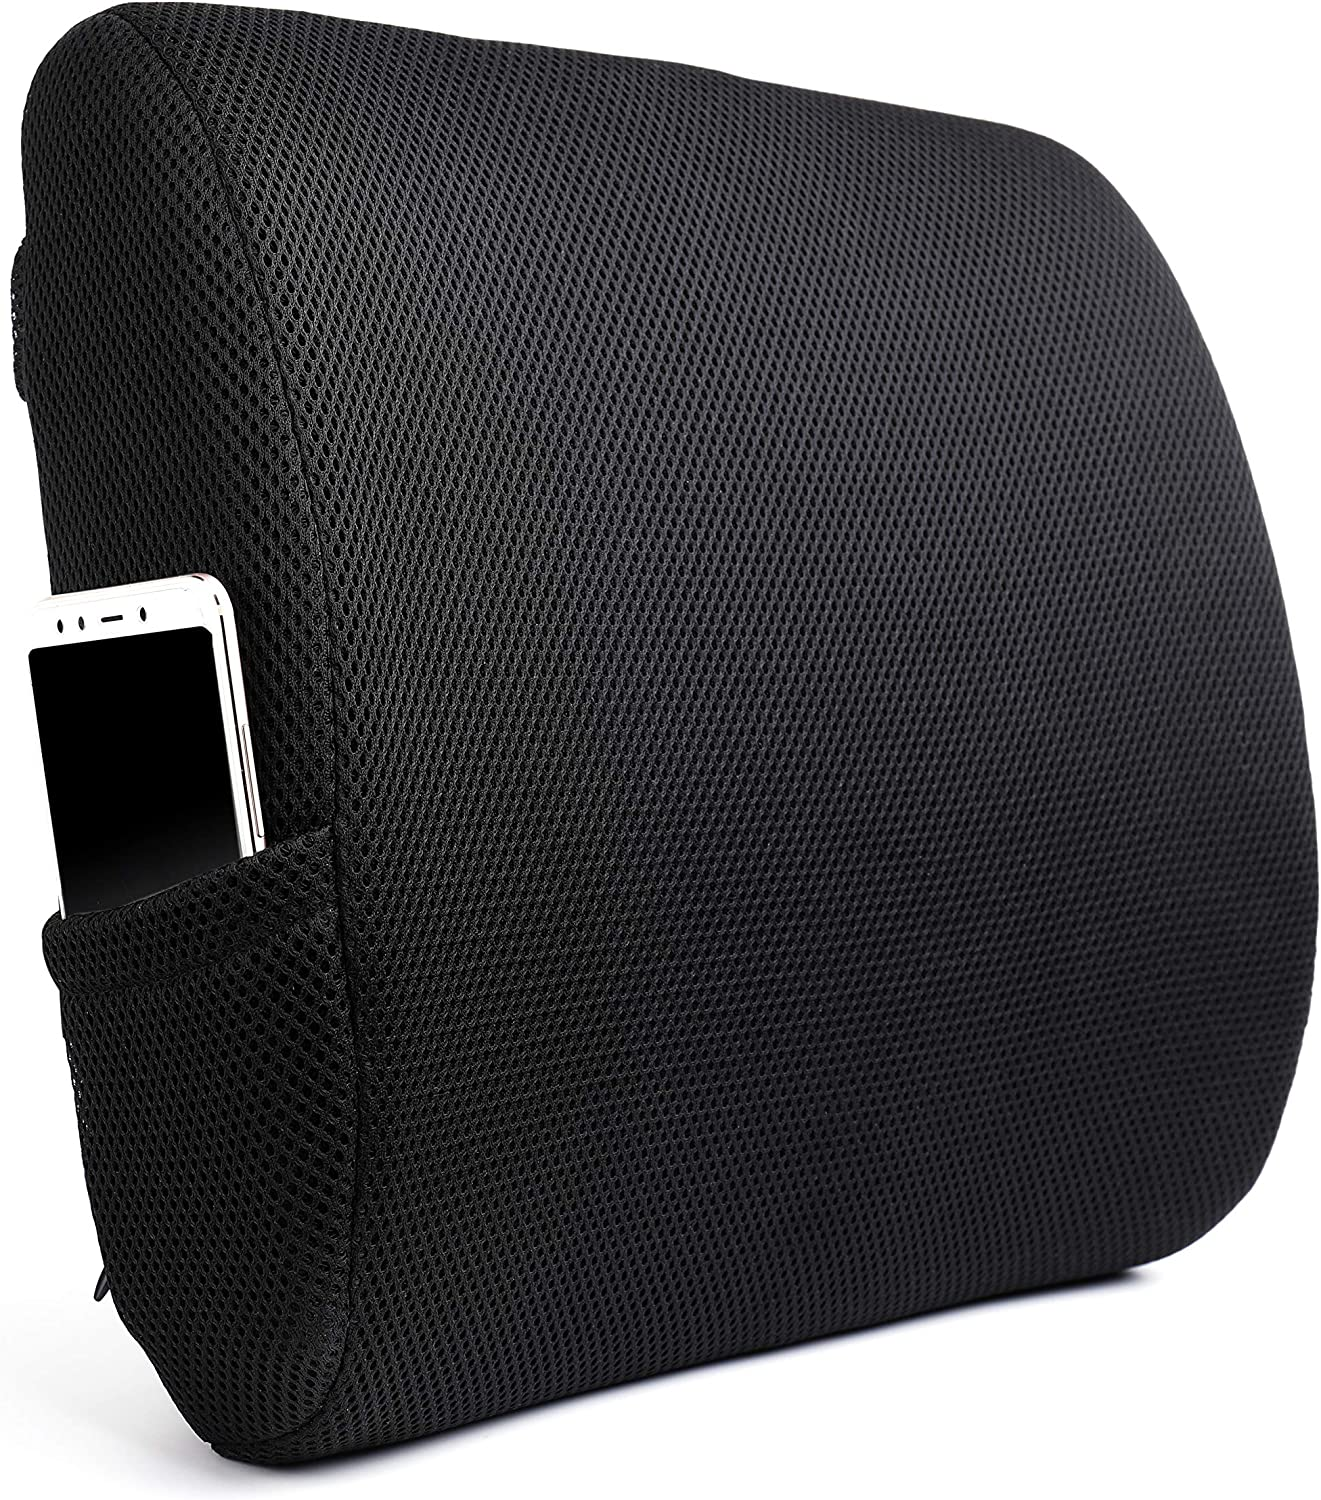 Tebery Memory Foam Back Cushion Designed for Lower Back Pain Relief Lumbar Support Pillow with Adjustable Straps for Car or Office/Computer Chair